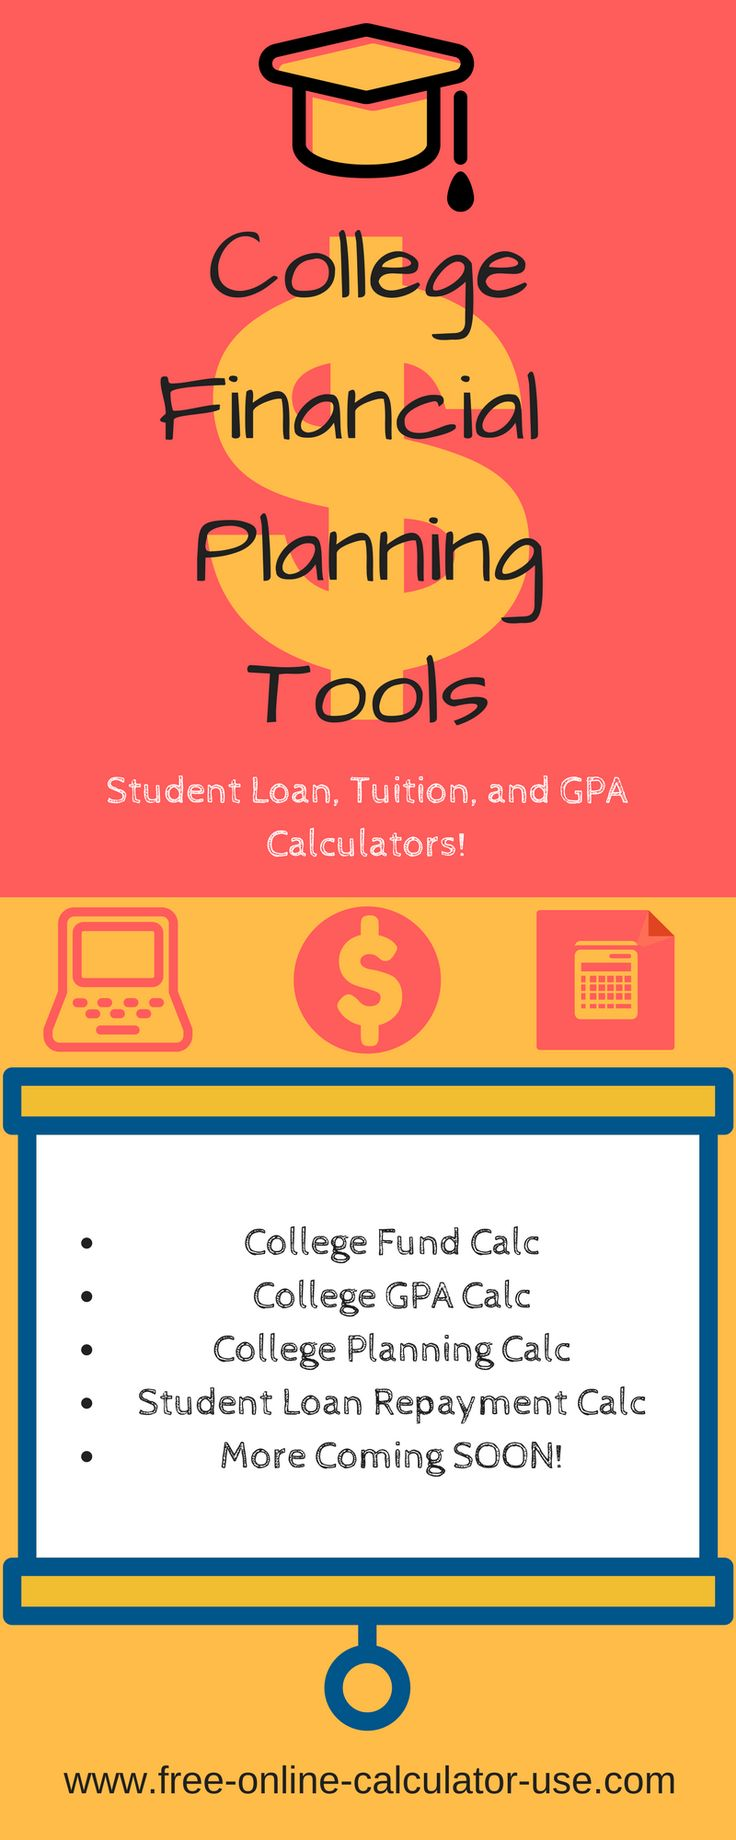 How To Calculate Gpa The College Financial Planning Tools And Calculators  In This Section Are Dedicated